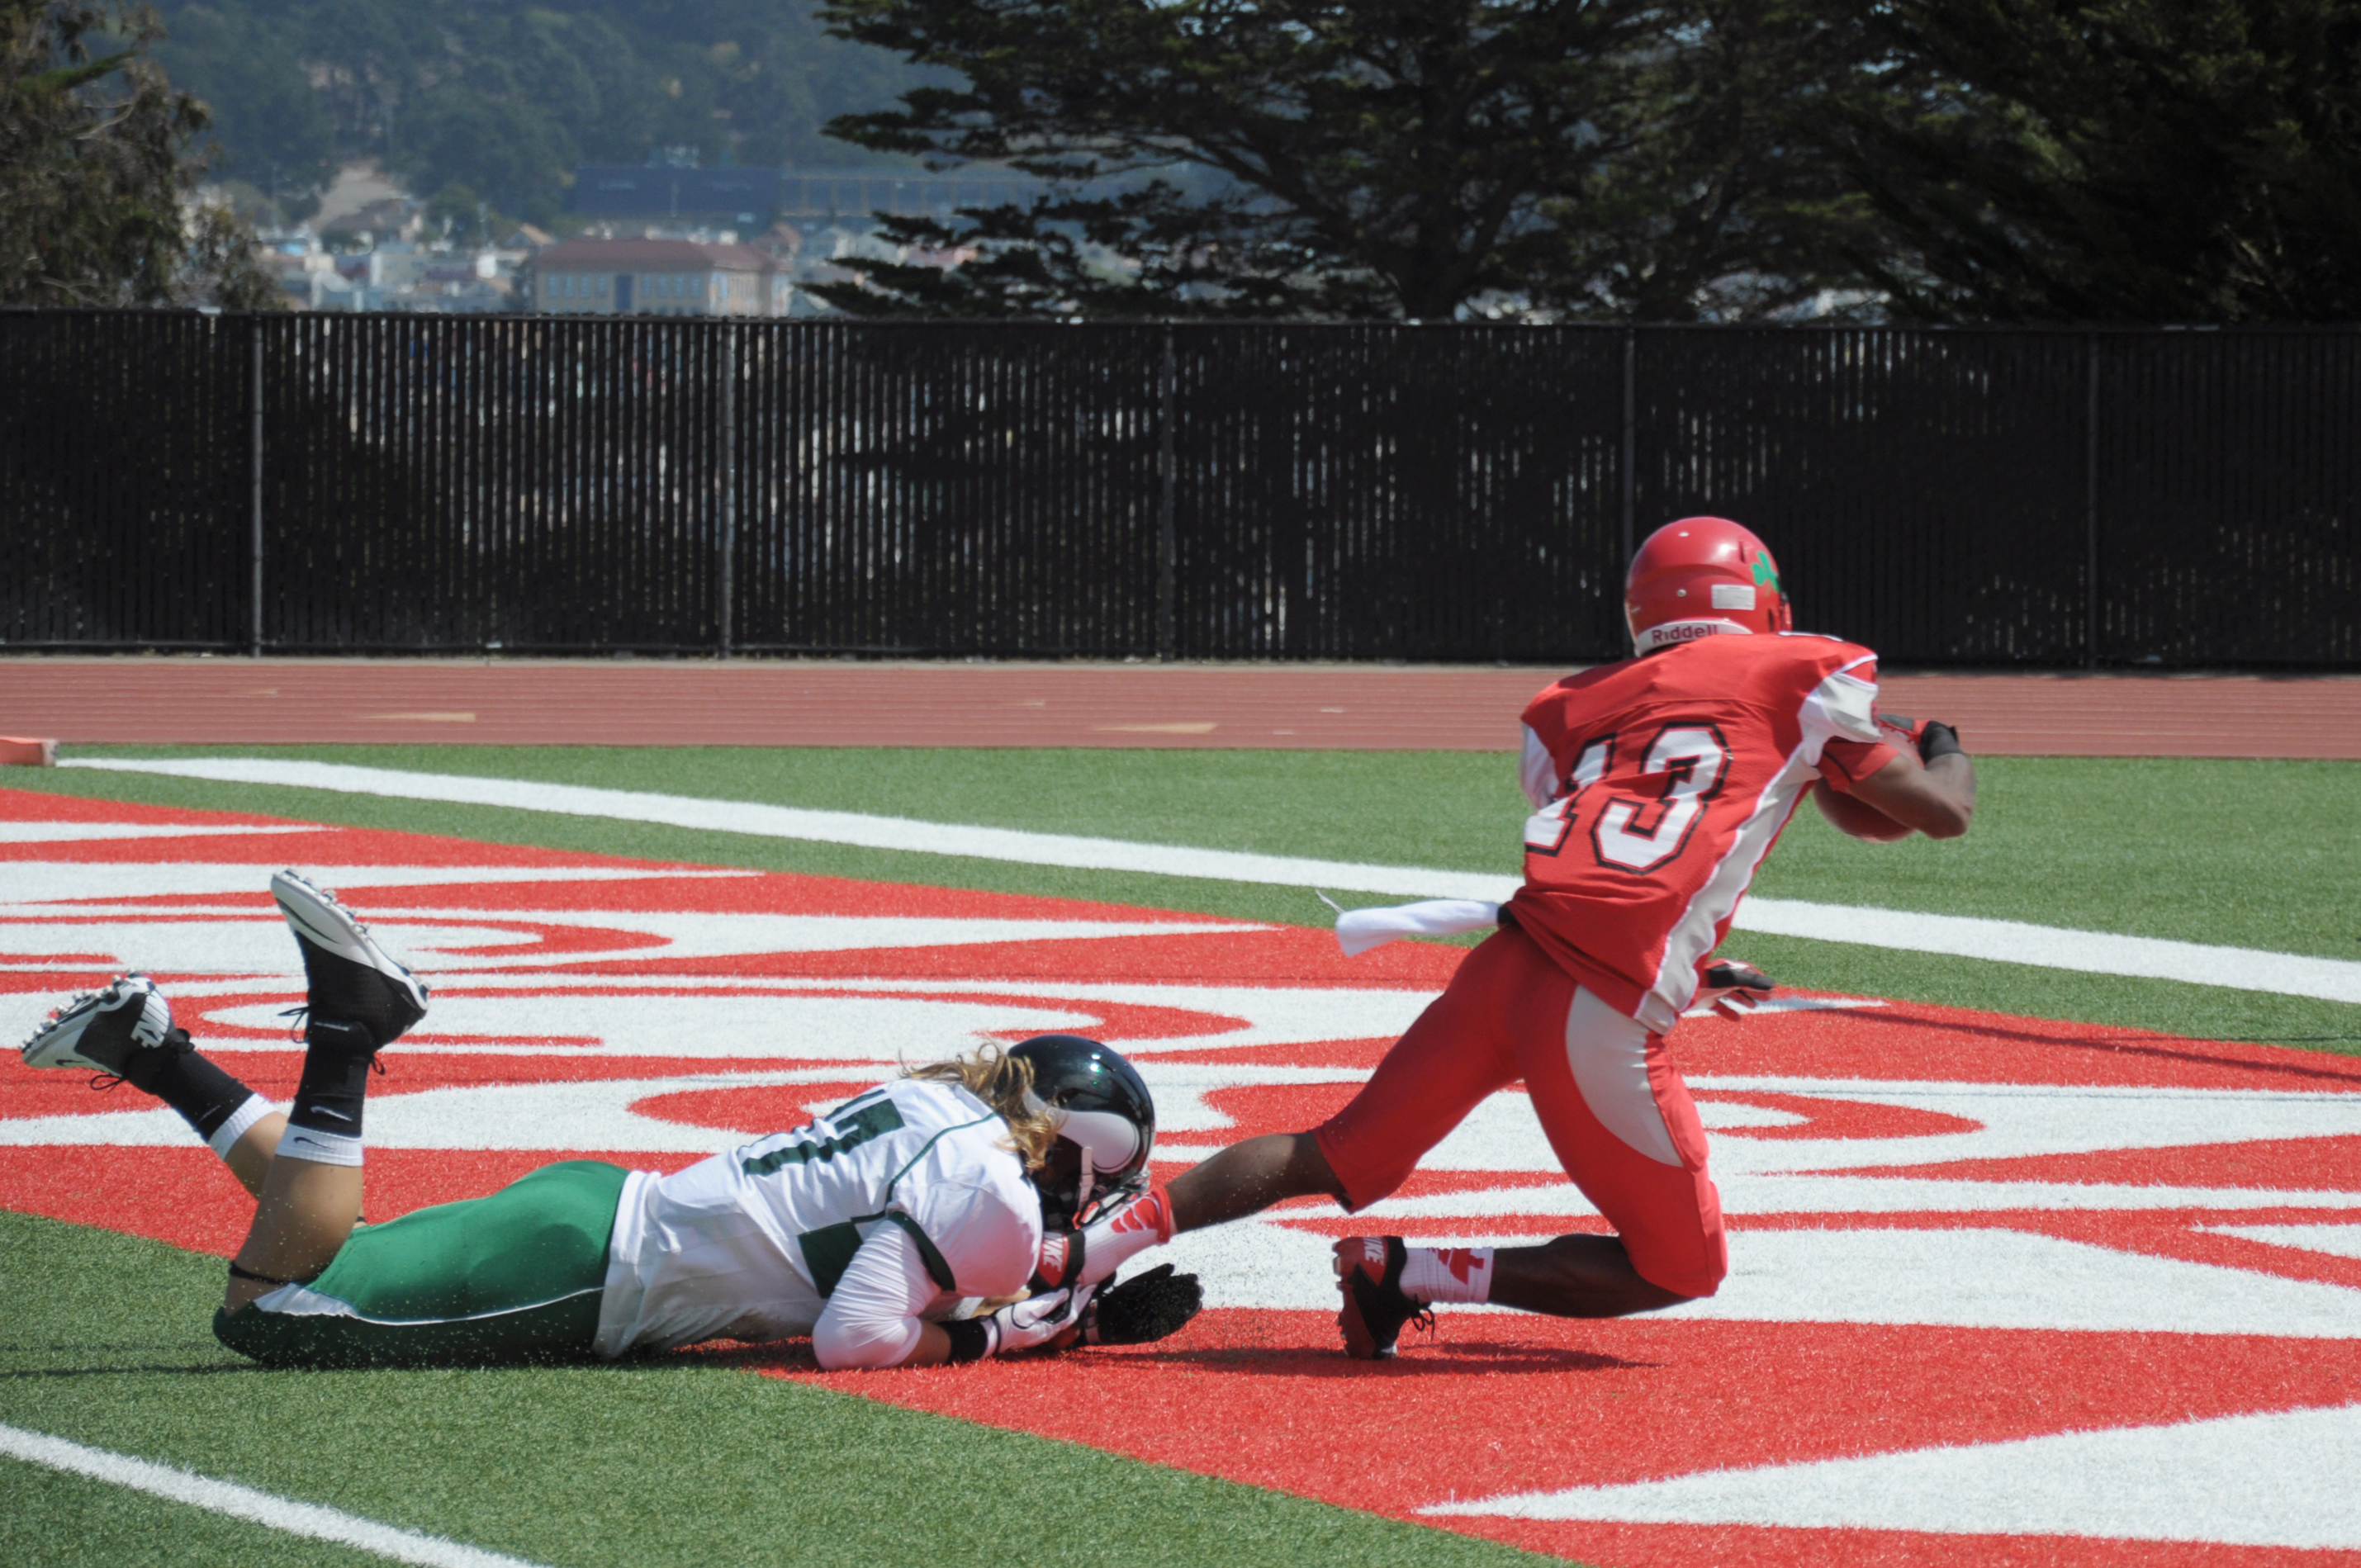 Dezmond Epps, wide receiver, earns a touchdown for the Rams during their football season opener held at Ocean Campus' Ram stadium on Saturday, September 1, 2012. Photo by Shane Menez/The Guardsman